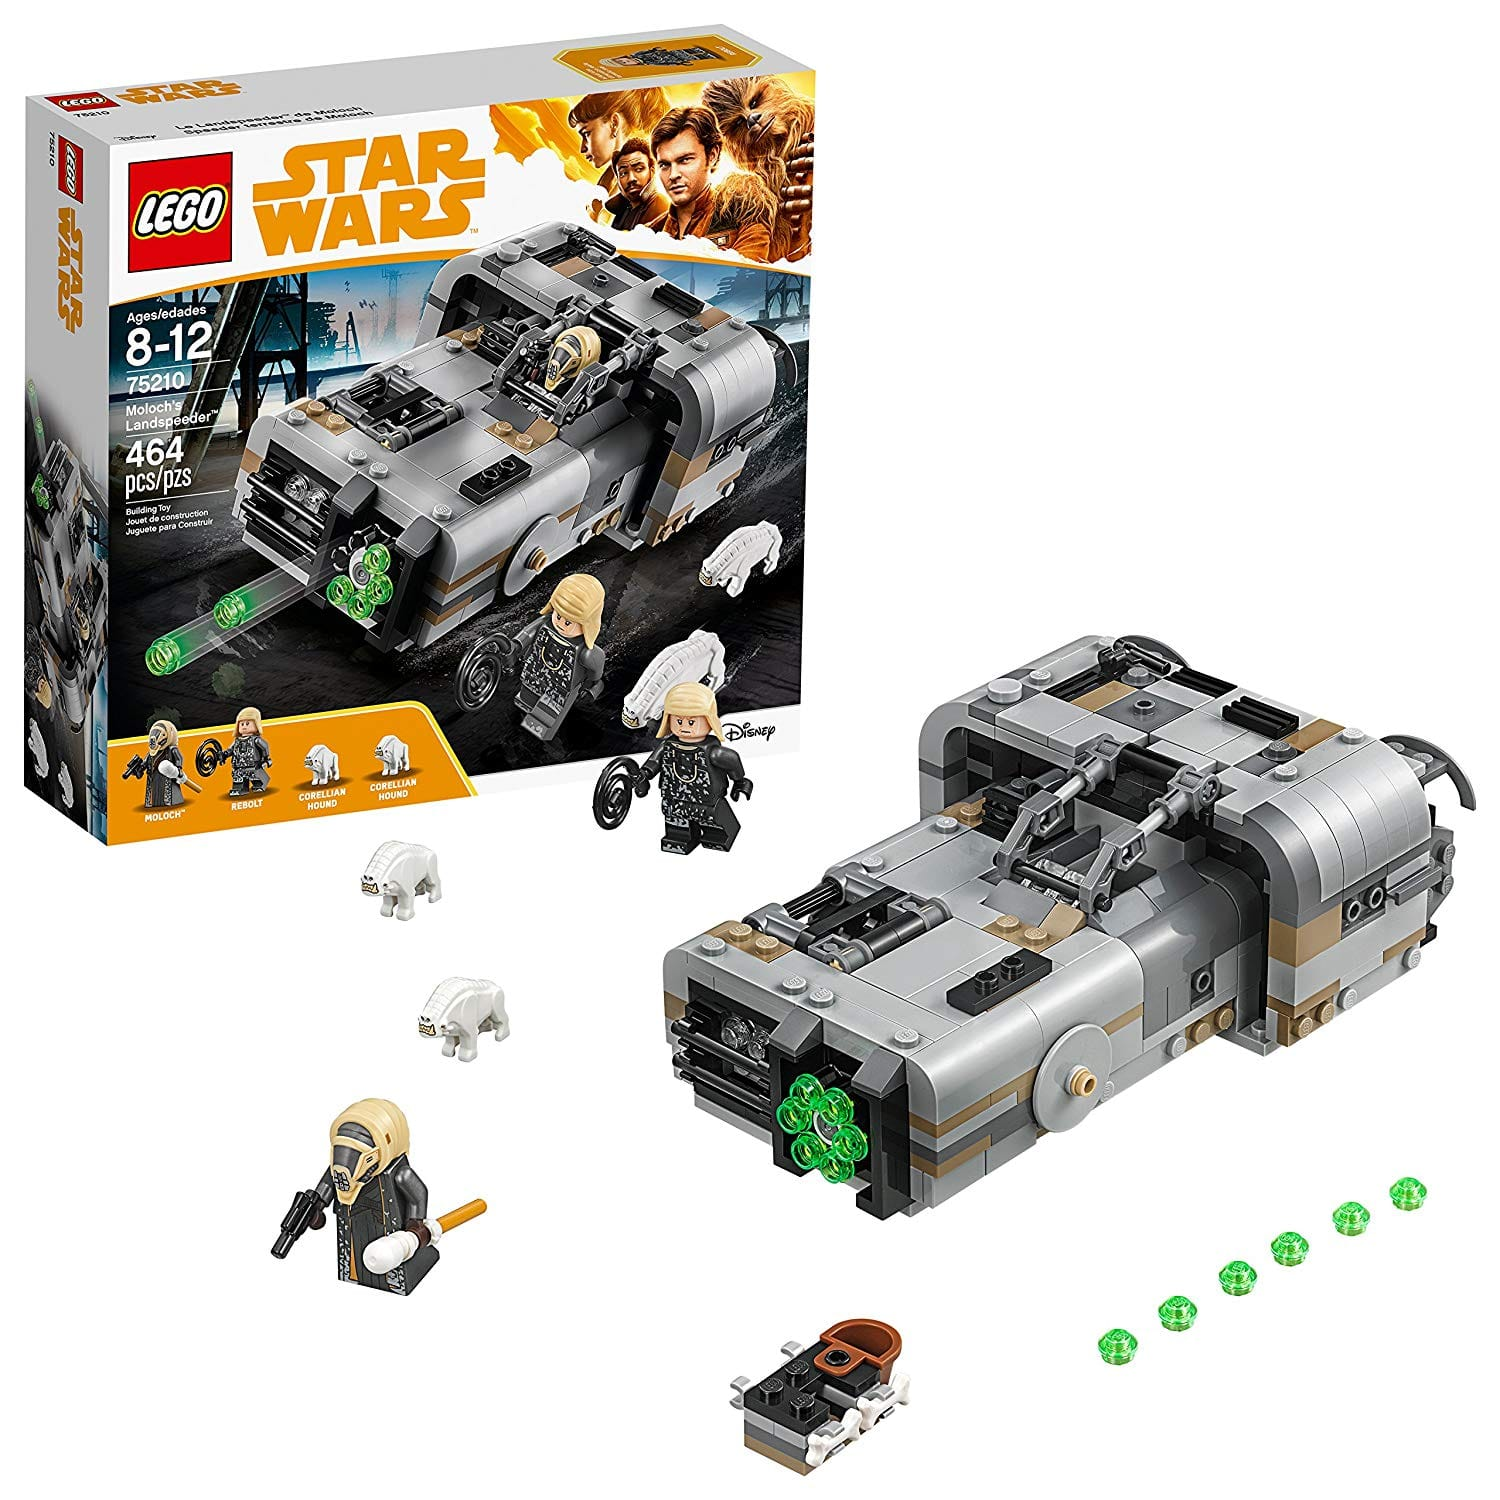 464-Piece LEGO Star Wars Moloch's Landspeeder (75210) for $21.53 at Walmart or Amazon